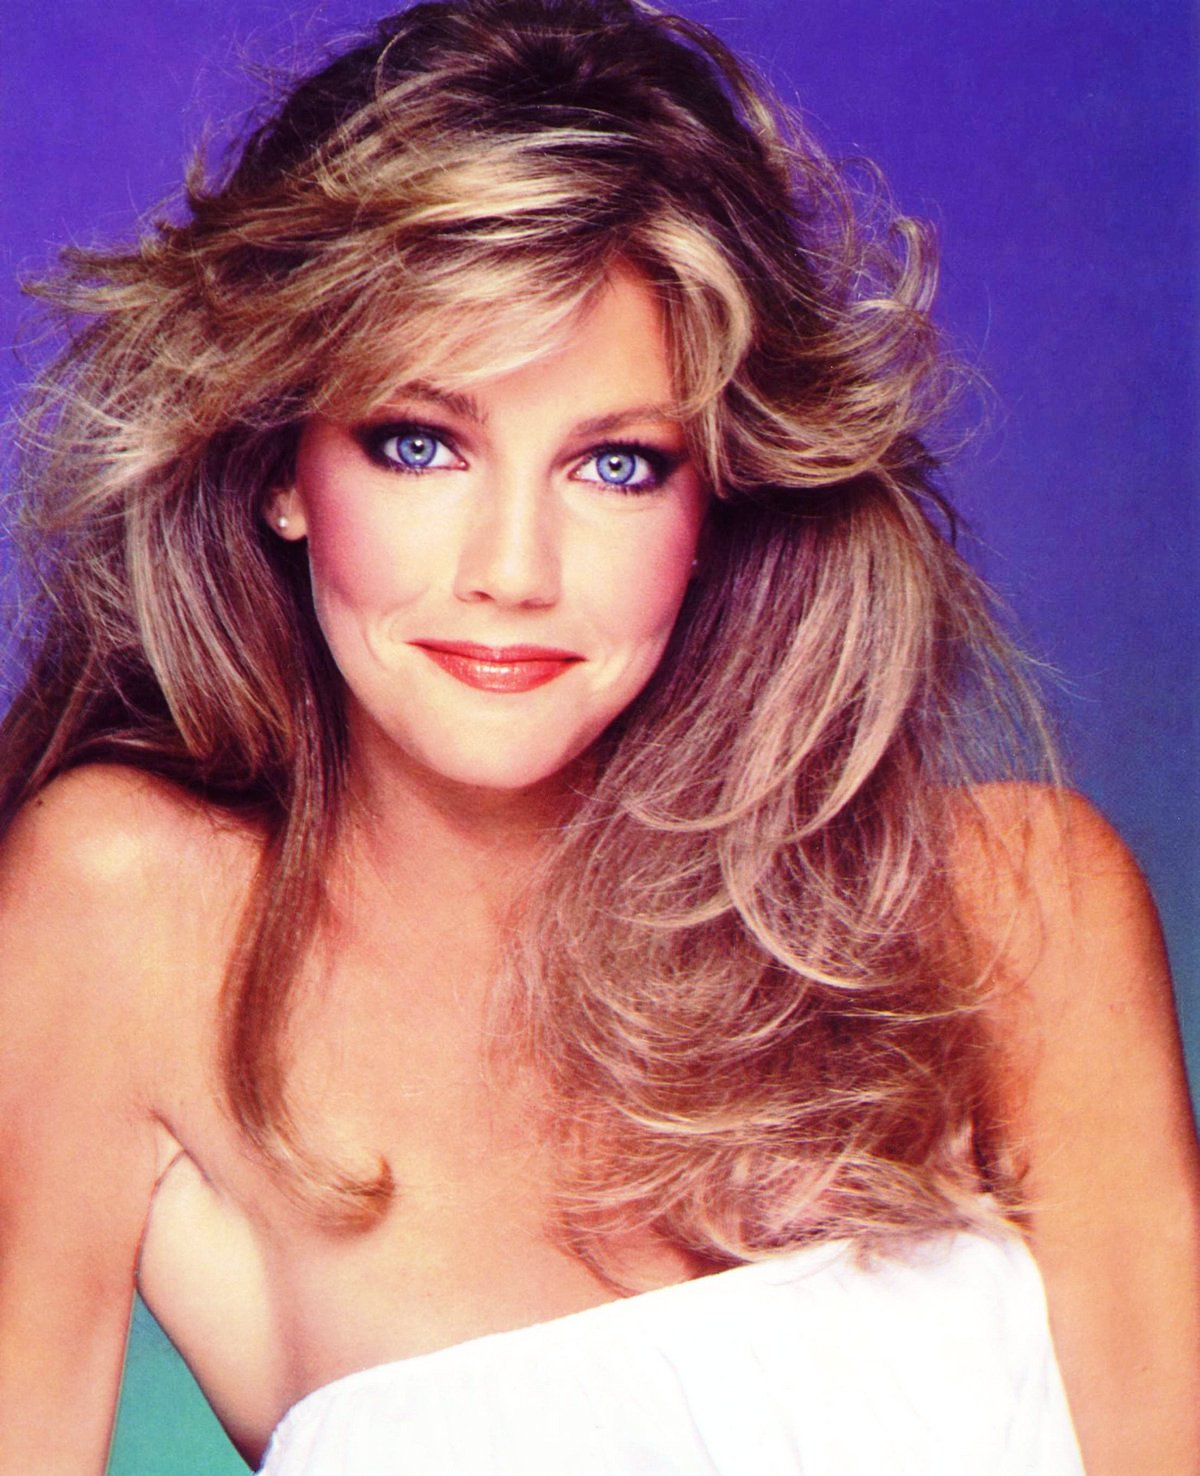 Heather Locklear Young Surgery Vip